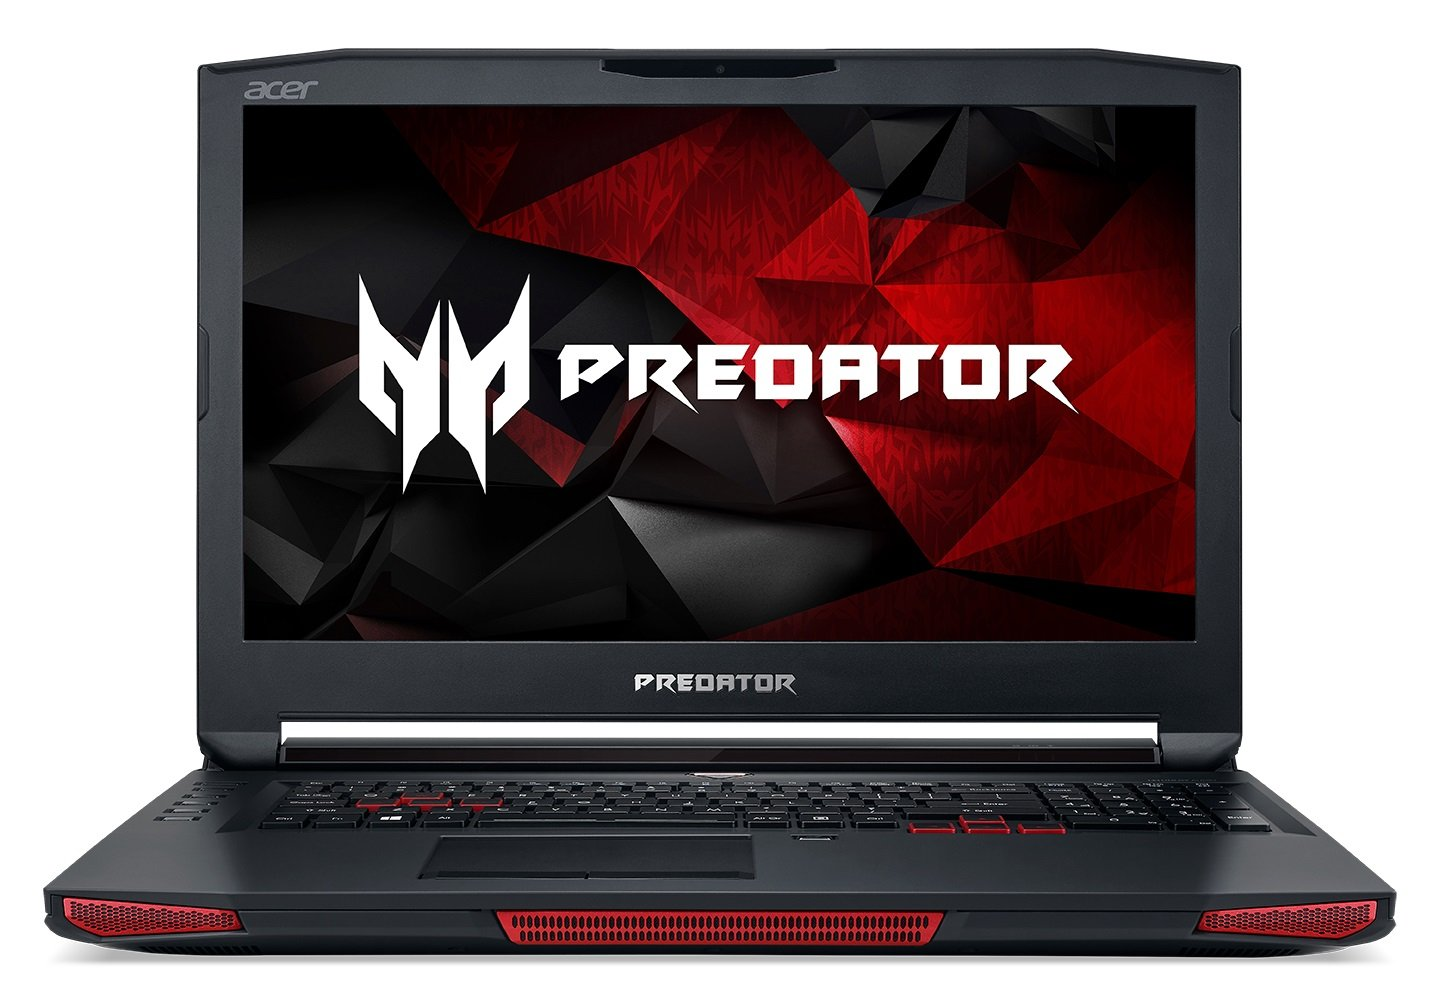 Acer Predator 17 X Gx 792 703d 173 Fhd 1920x1080 Add Ram To Your Laptop Easily Gaming Intel Core I7 7820hk 32gb 512gb Ssd 1tb Hdd Windows 10 Home